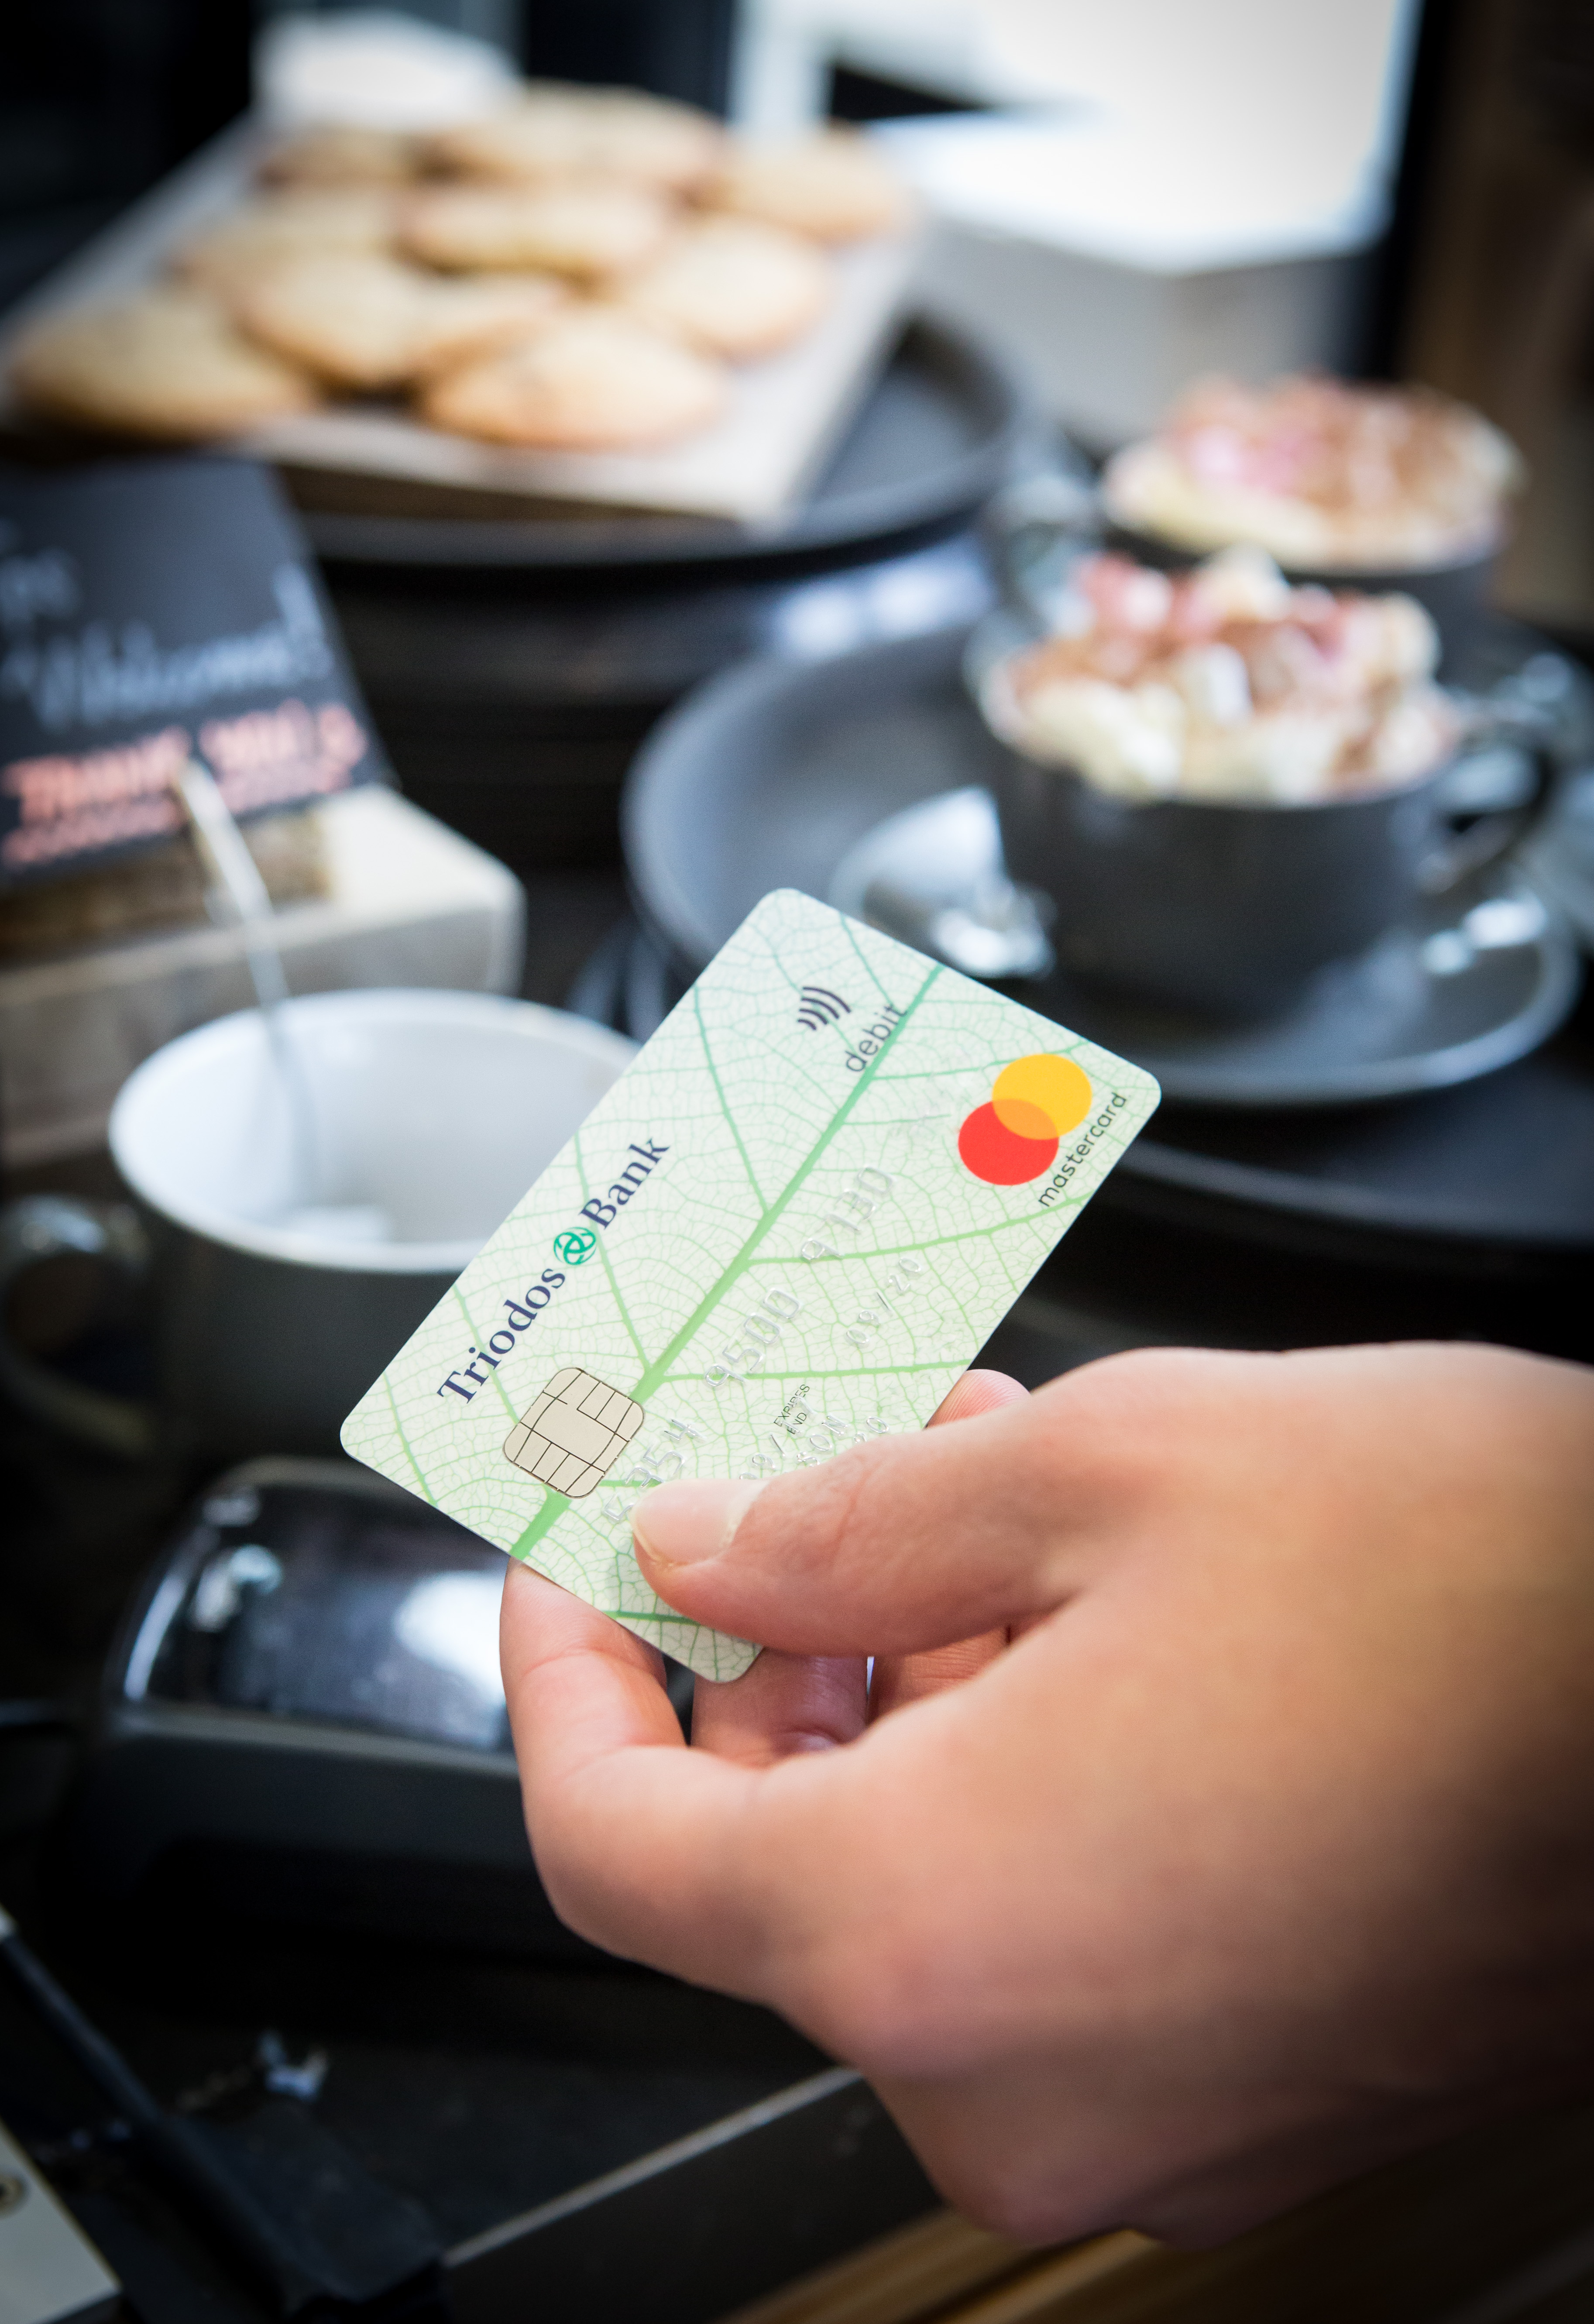 Triodos Bank card